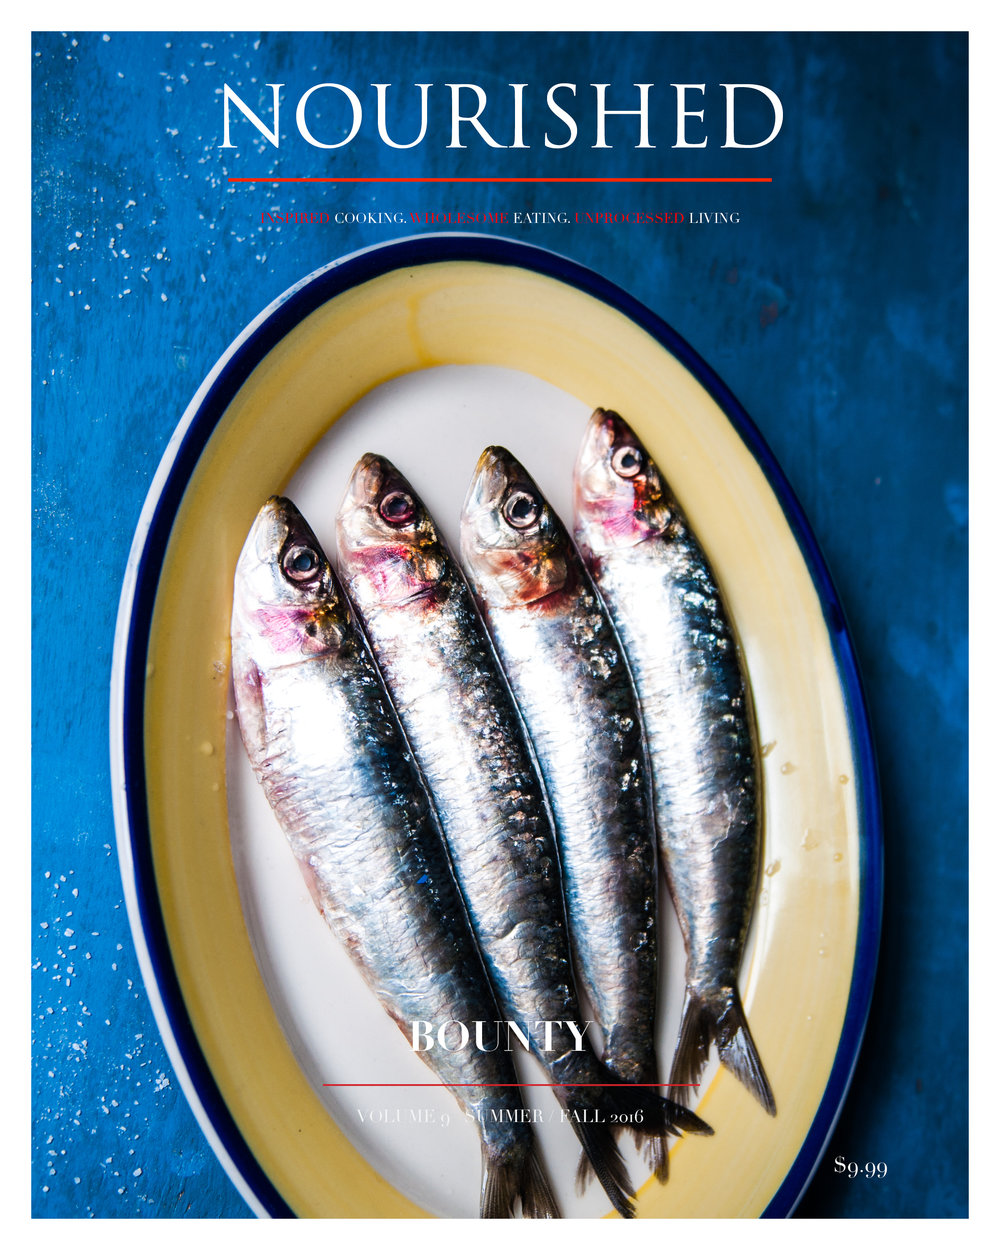 NOURISHED Vol 9 - BOUNTY